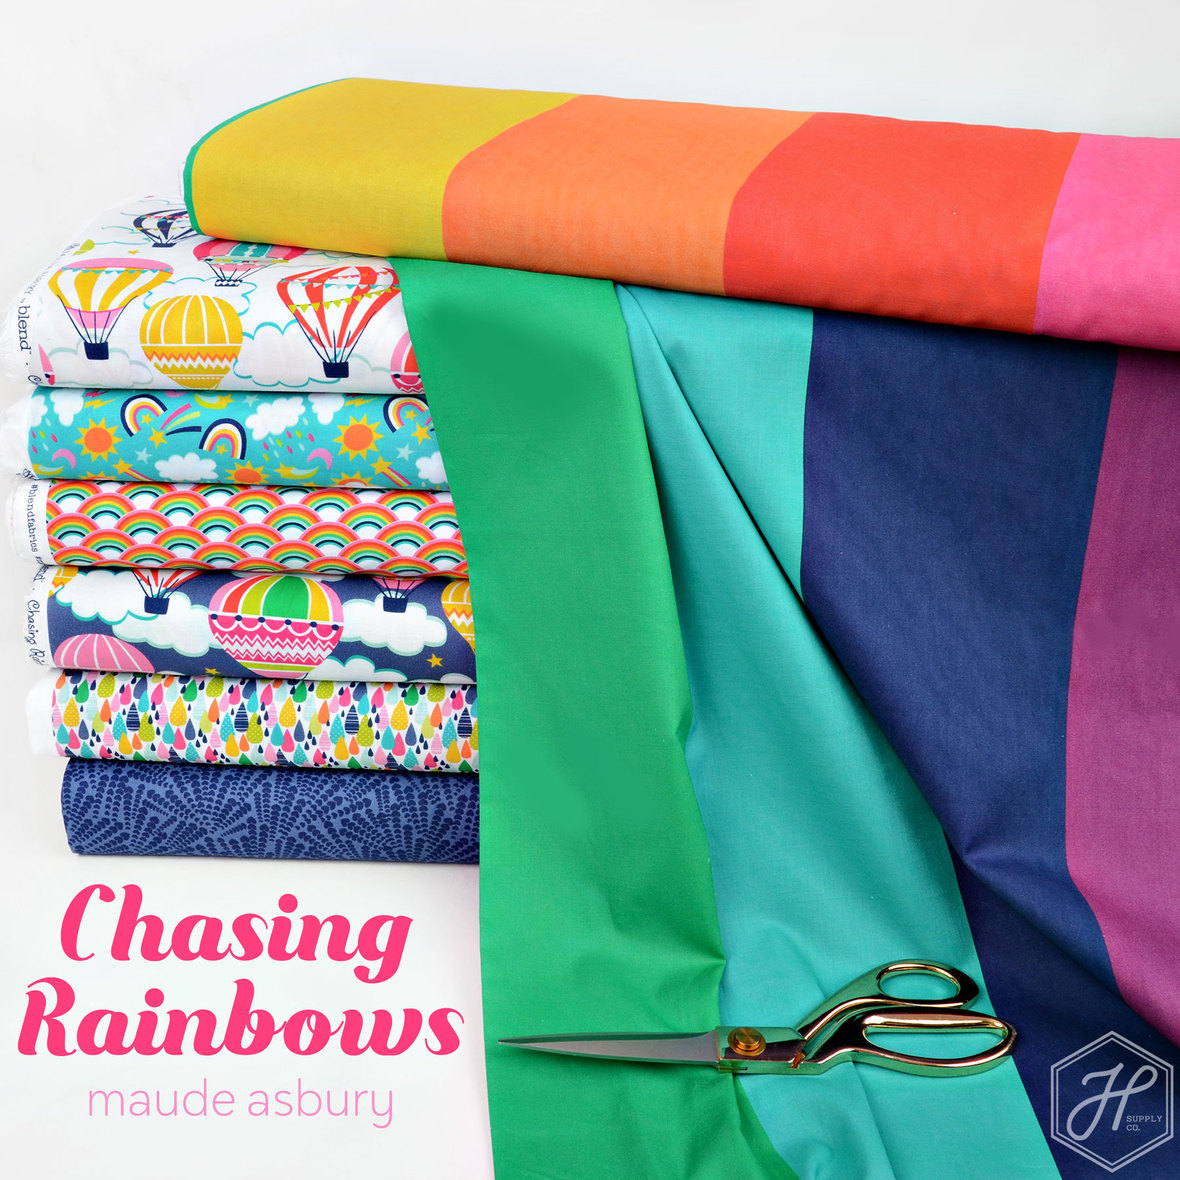 Chasing-Rainbows-Fabric-Maude-Asbury-for-Blend